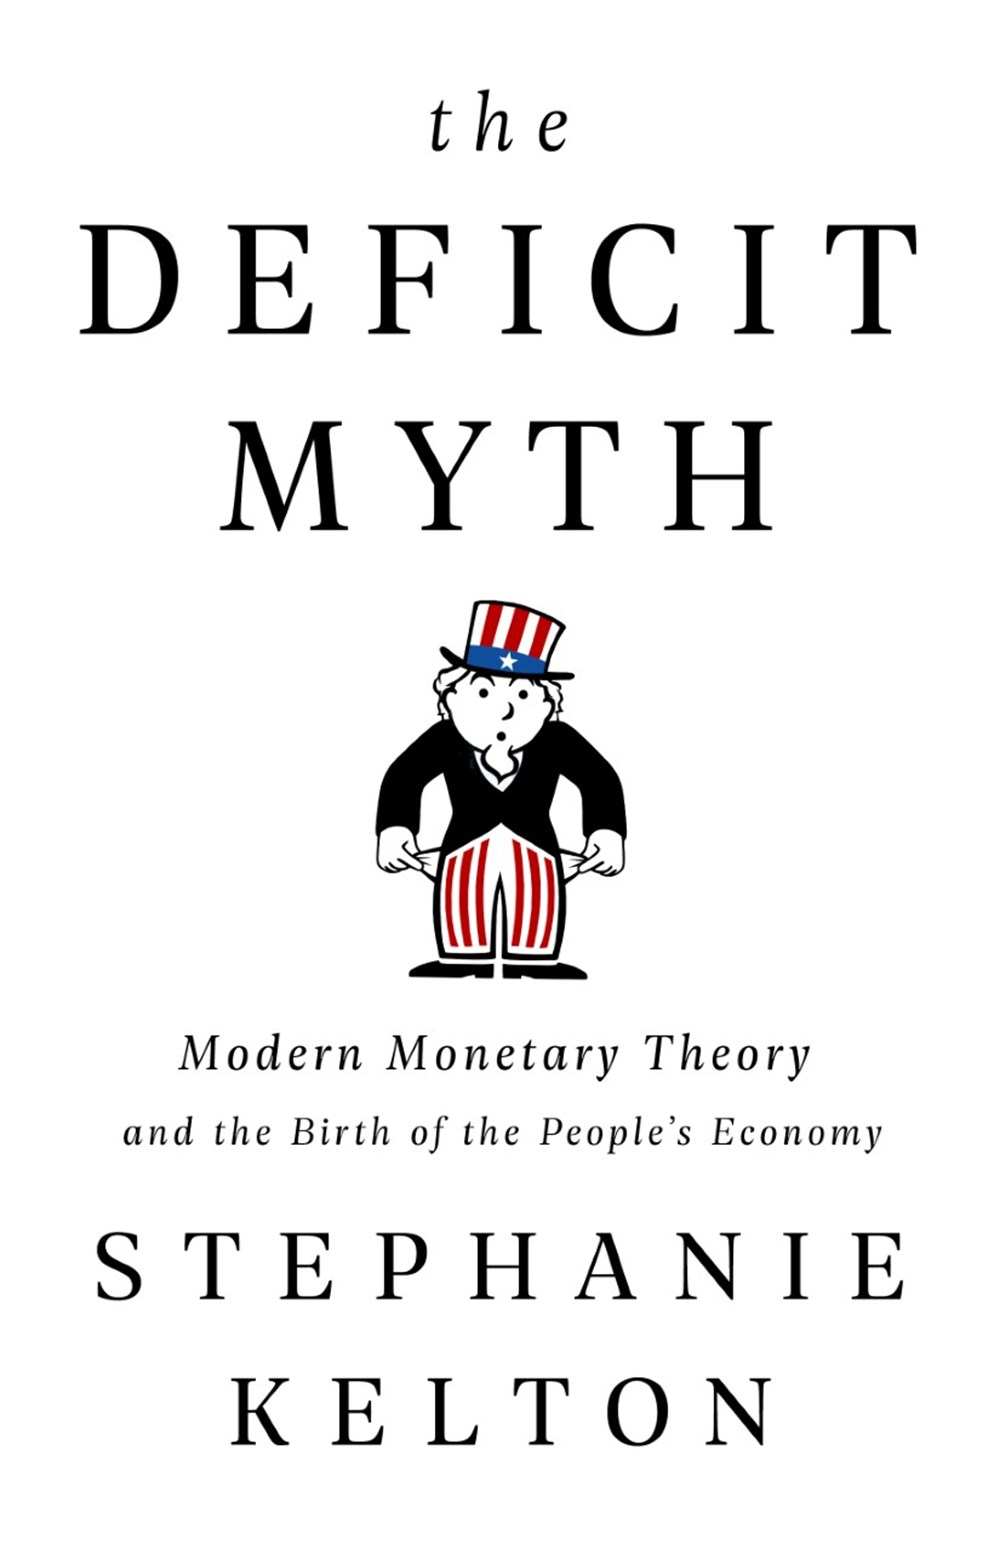 Deficit Myth Modern Monetary Theory and the Birth of the People's Economy